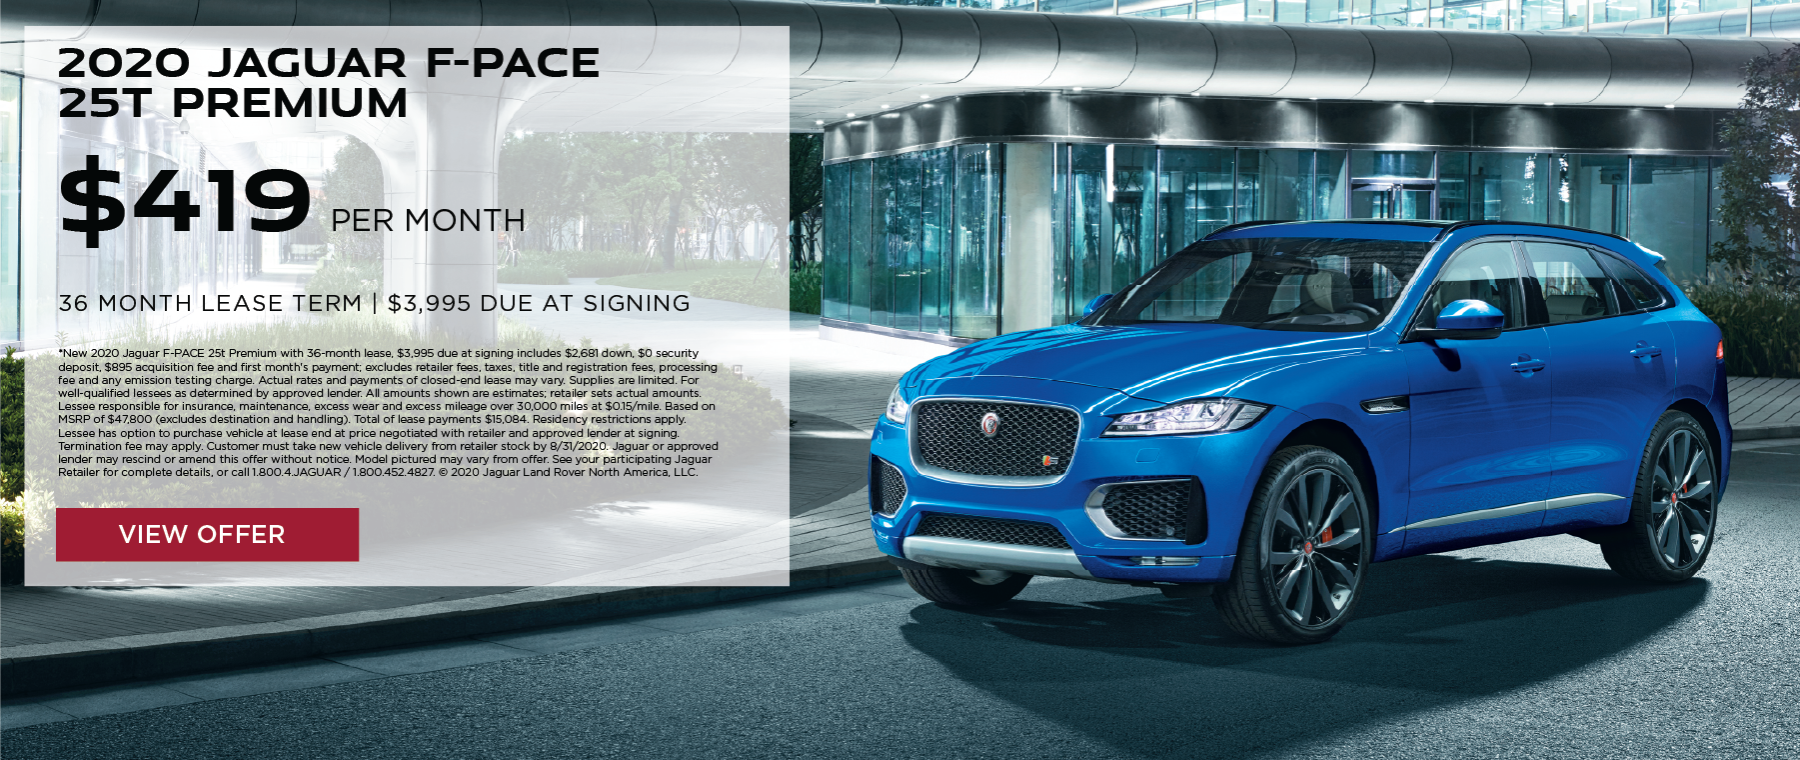 2020 JAGUAR F-PACE 25T PREMIUM. $419 PER MONTH. 36 MONTH LEASE TERM. $3,995 CASH DUE AT SIGNING. $0 SECURITY DEPOSIT. 10,000 MILES PER YEAR. EXCLUDES RETAILER FEES, TAXES, TITLE AND REGISTRATION FEES, PROCESSING FEE AND ANY EMISSION TESTING CHARGE. OFFER ENDS 8/31/2020.